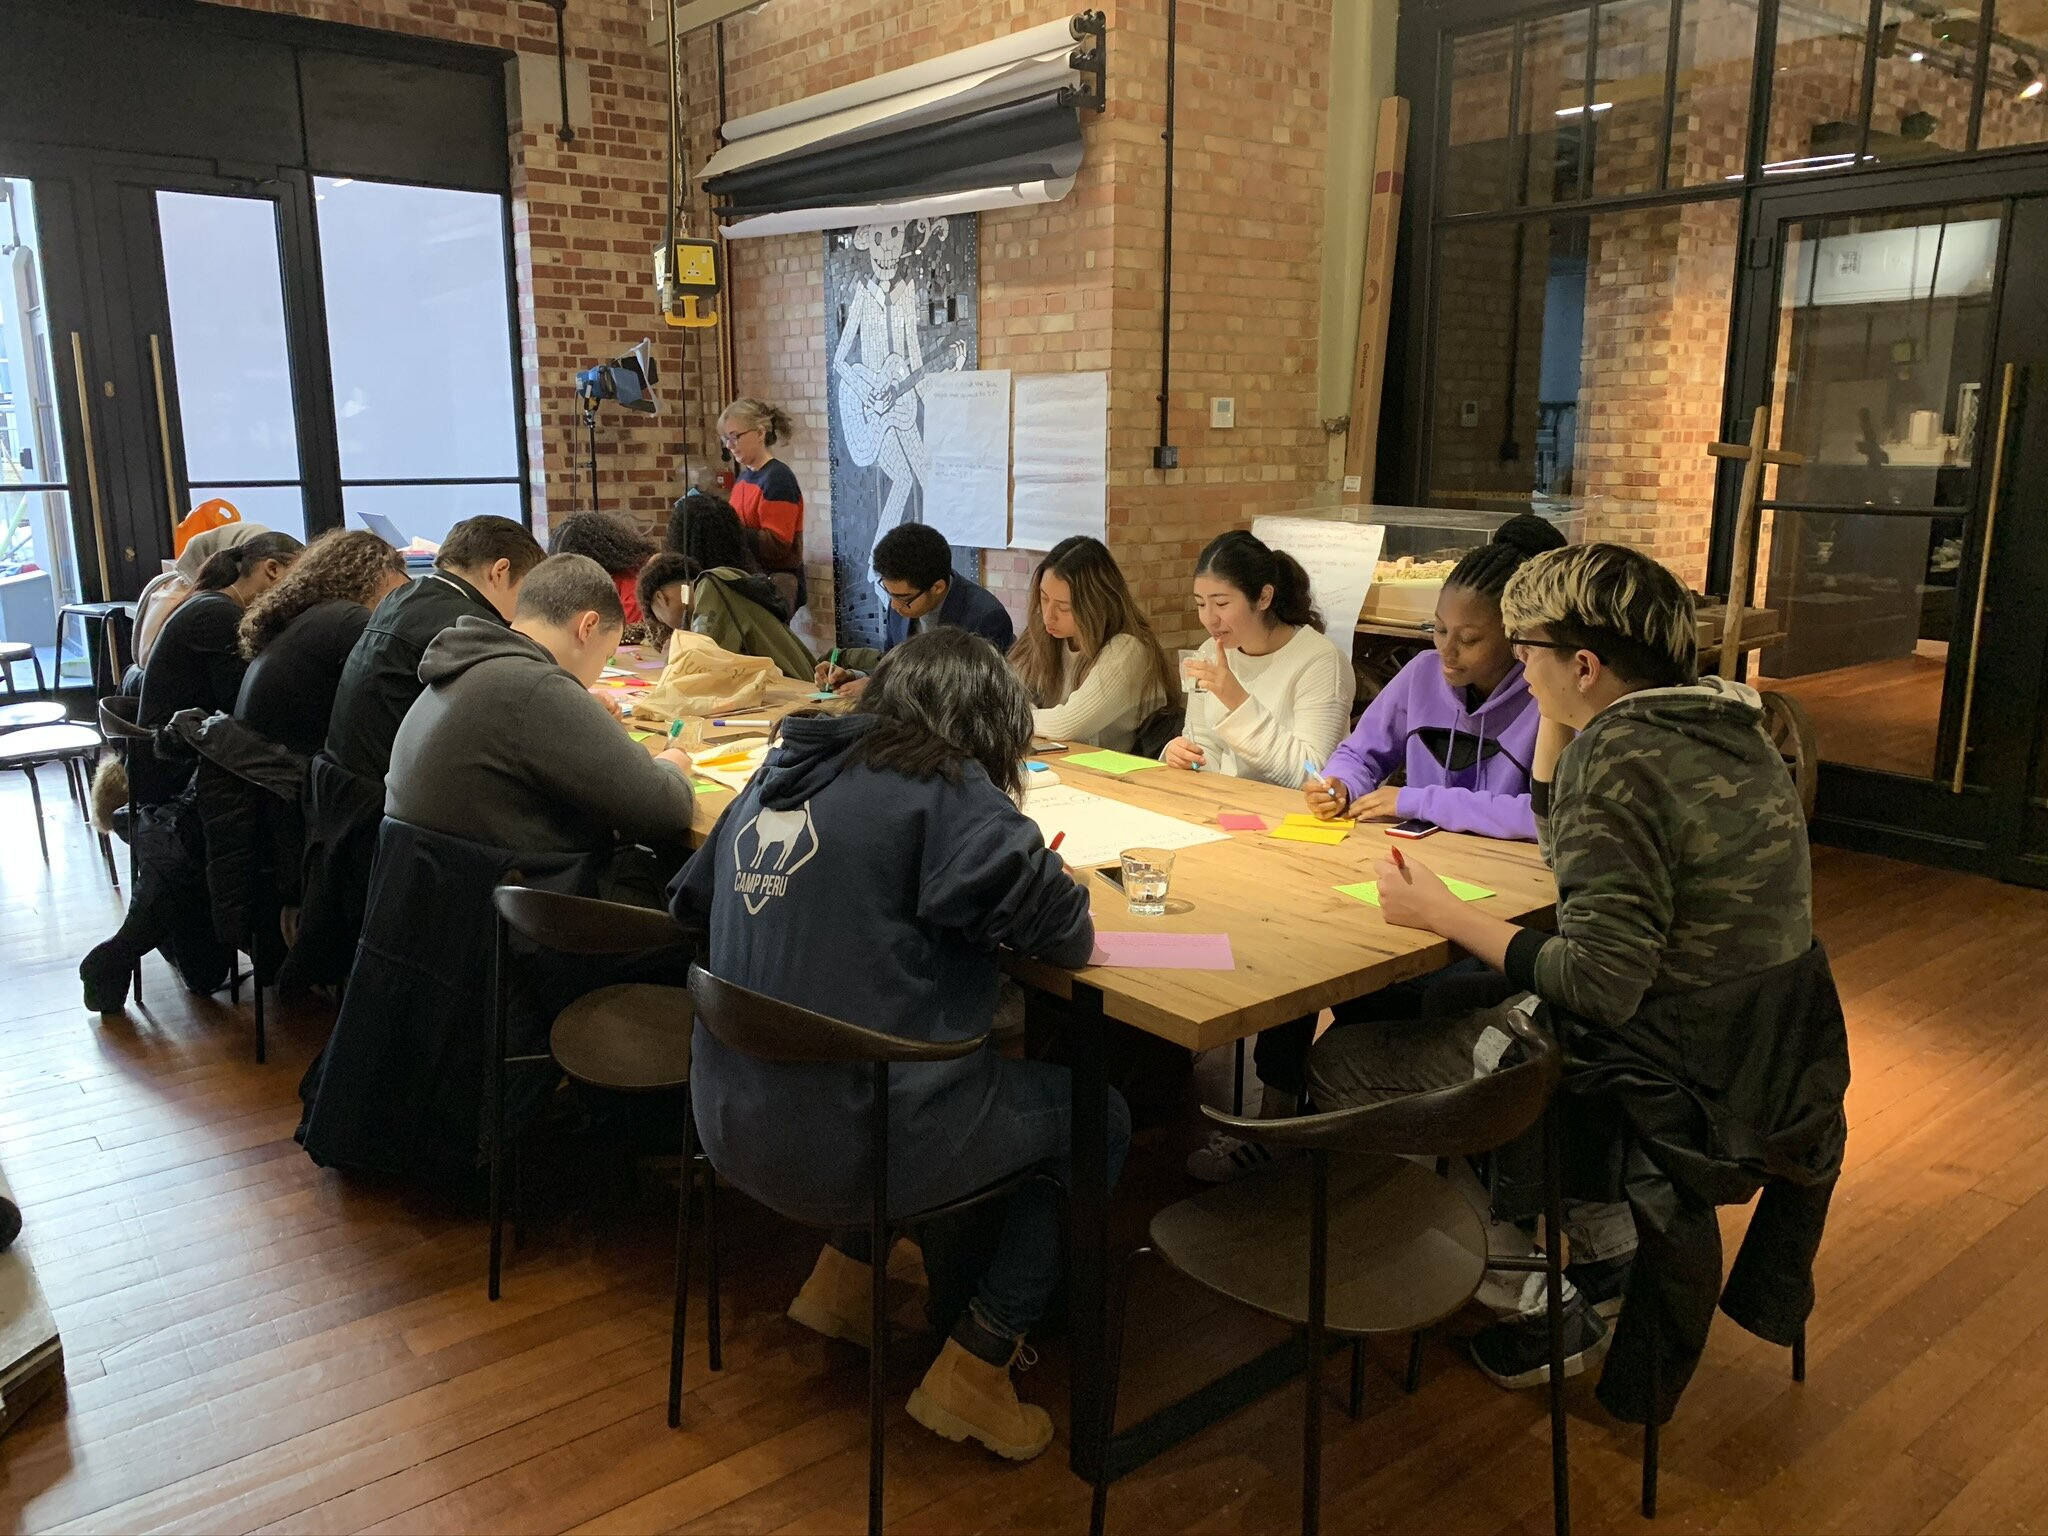 The team brainstorming their ideas. They want to lead change in their community. Thanks to Squires for letting us use their space.